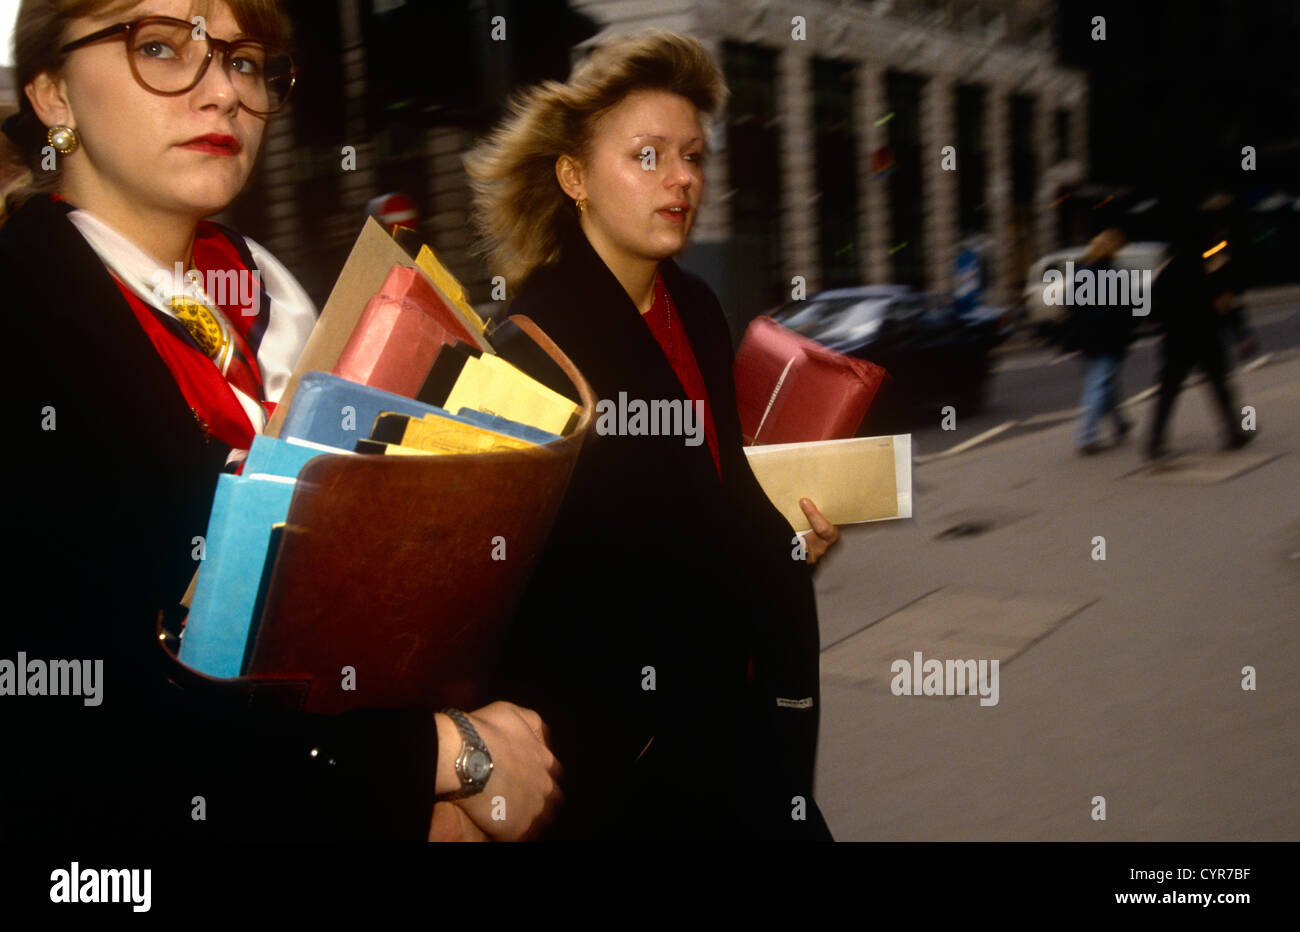 women-office-workers-dash-through-a-city